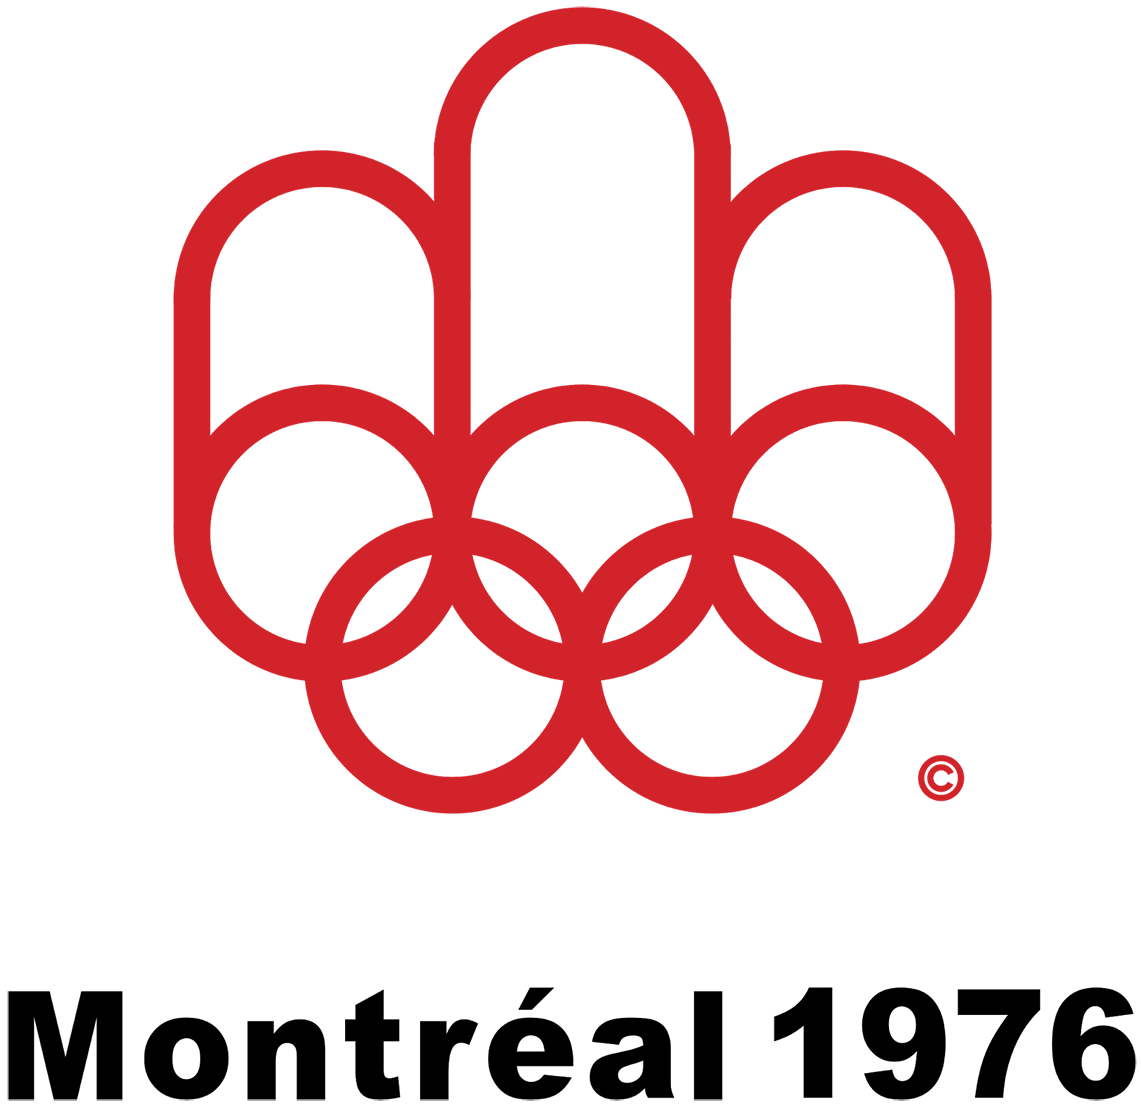 All olympic logos ordered by quality mike industries 6 lake placid 1932 score 80 out of 100 biocorpaavc Choice Image